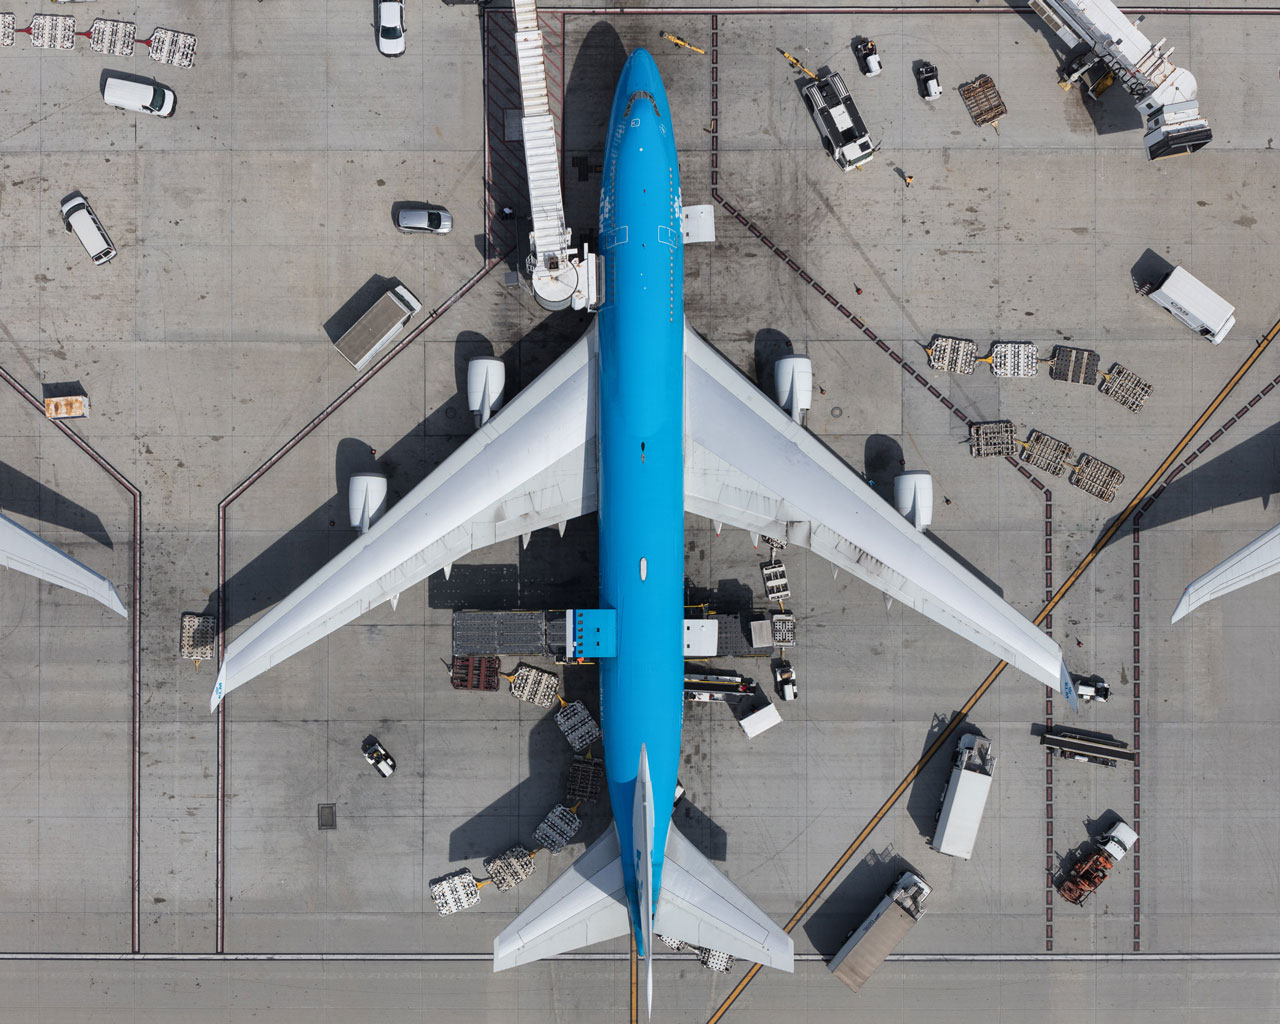 A KLM 747 unloads at a gate at LAX.